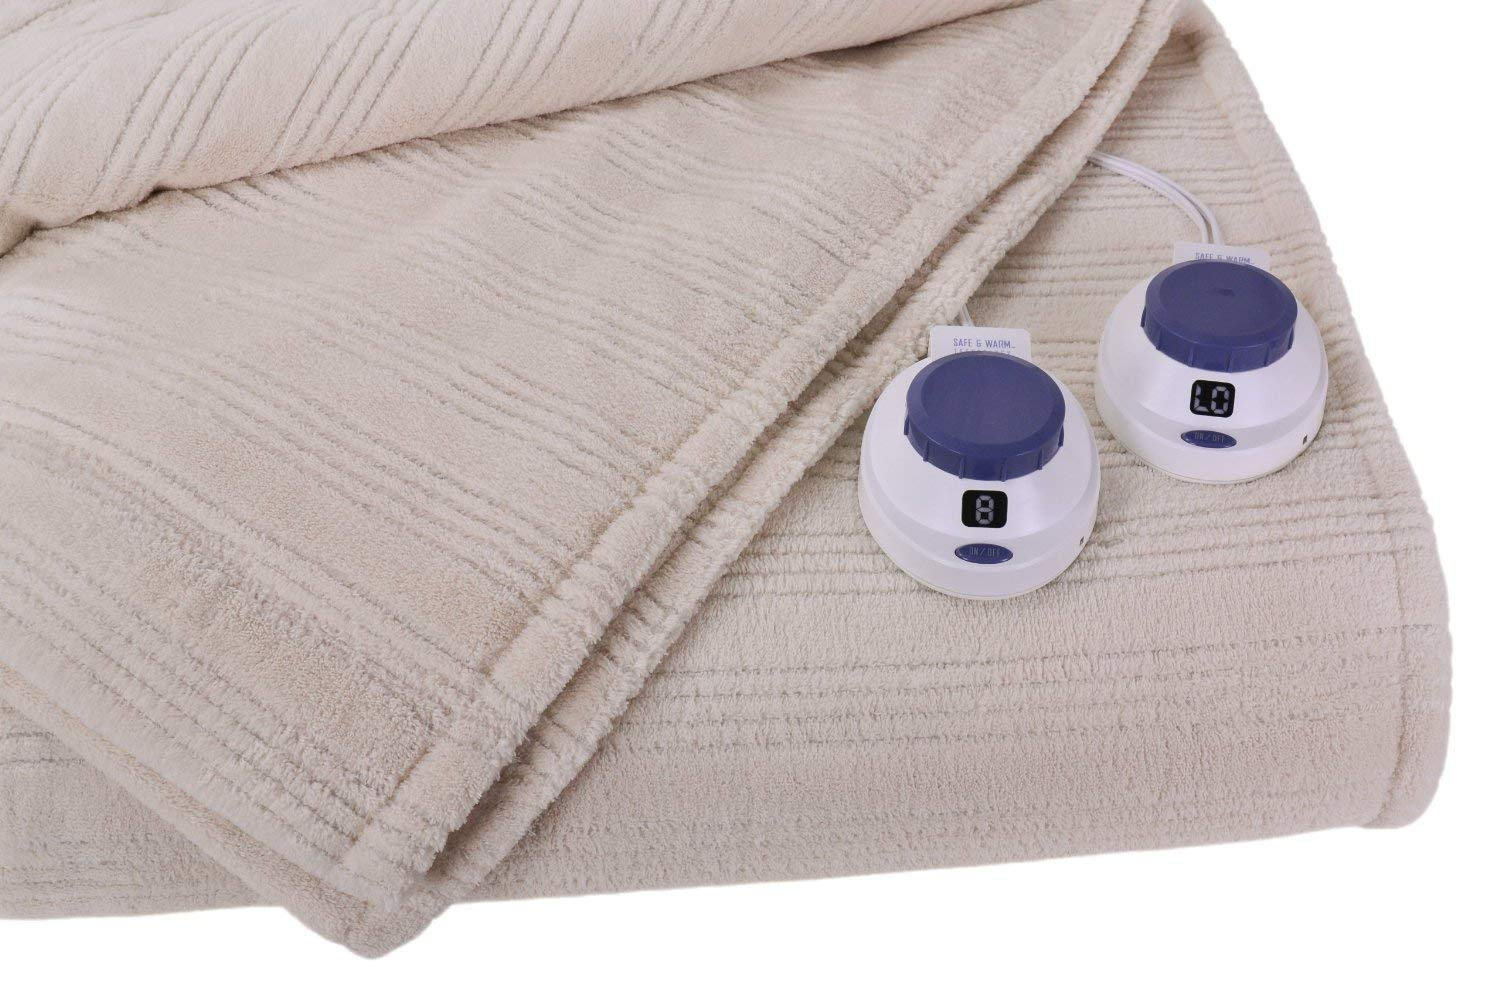 Top 10 Best Electric Blanket